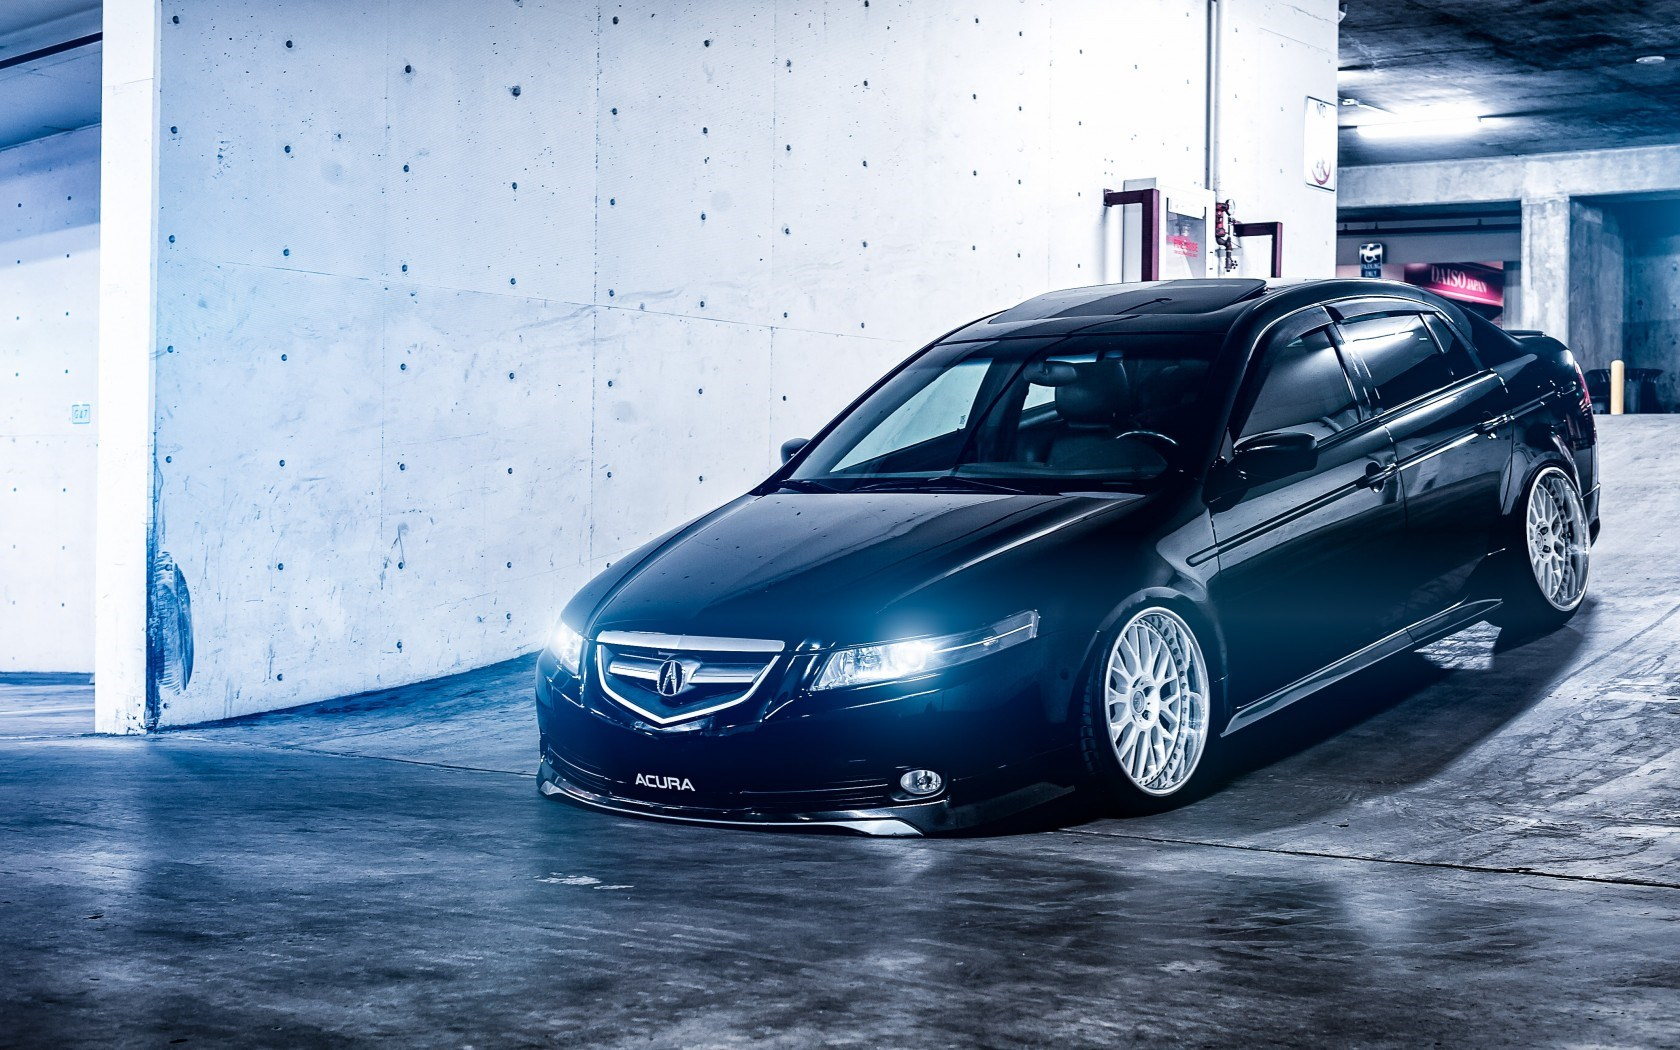 1680x1050 - Acura TSX Wallpapers 6